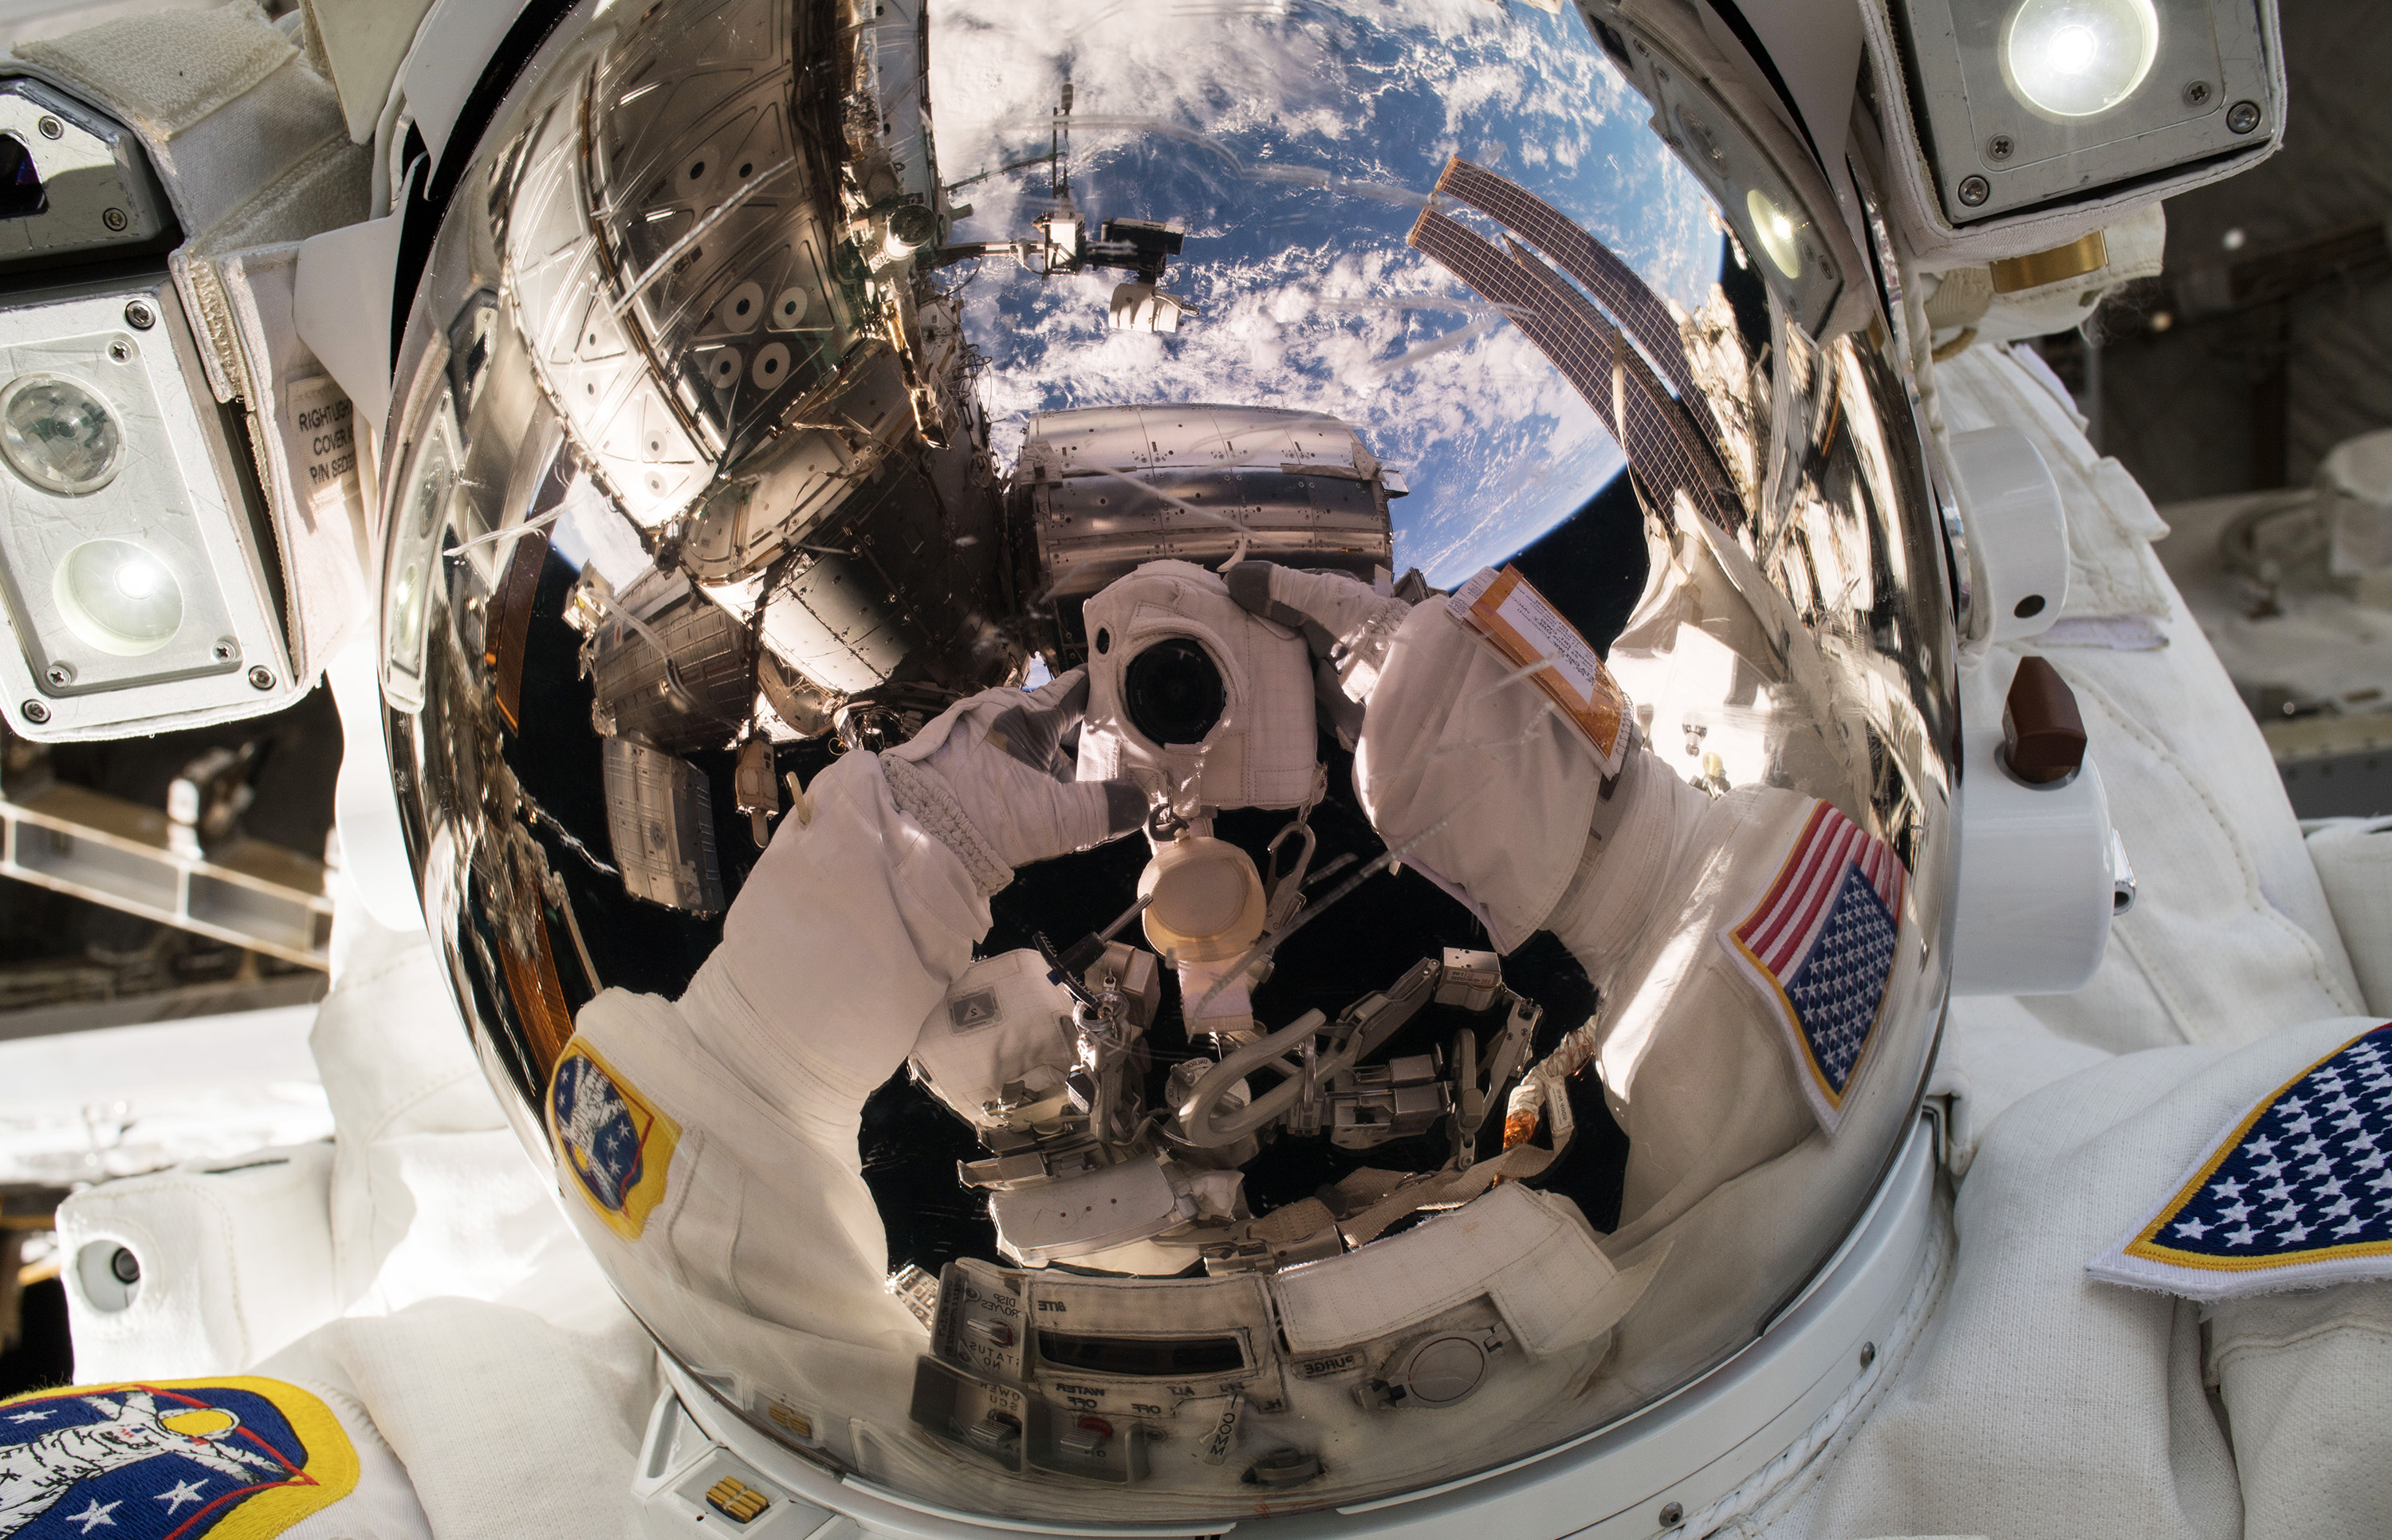 Spectacular photos from space